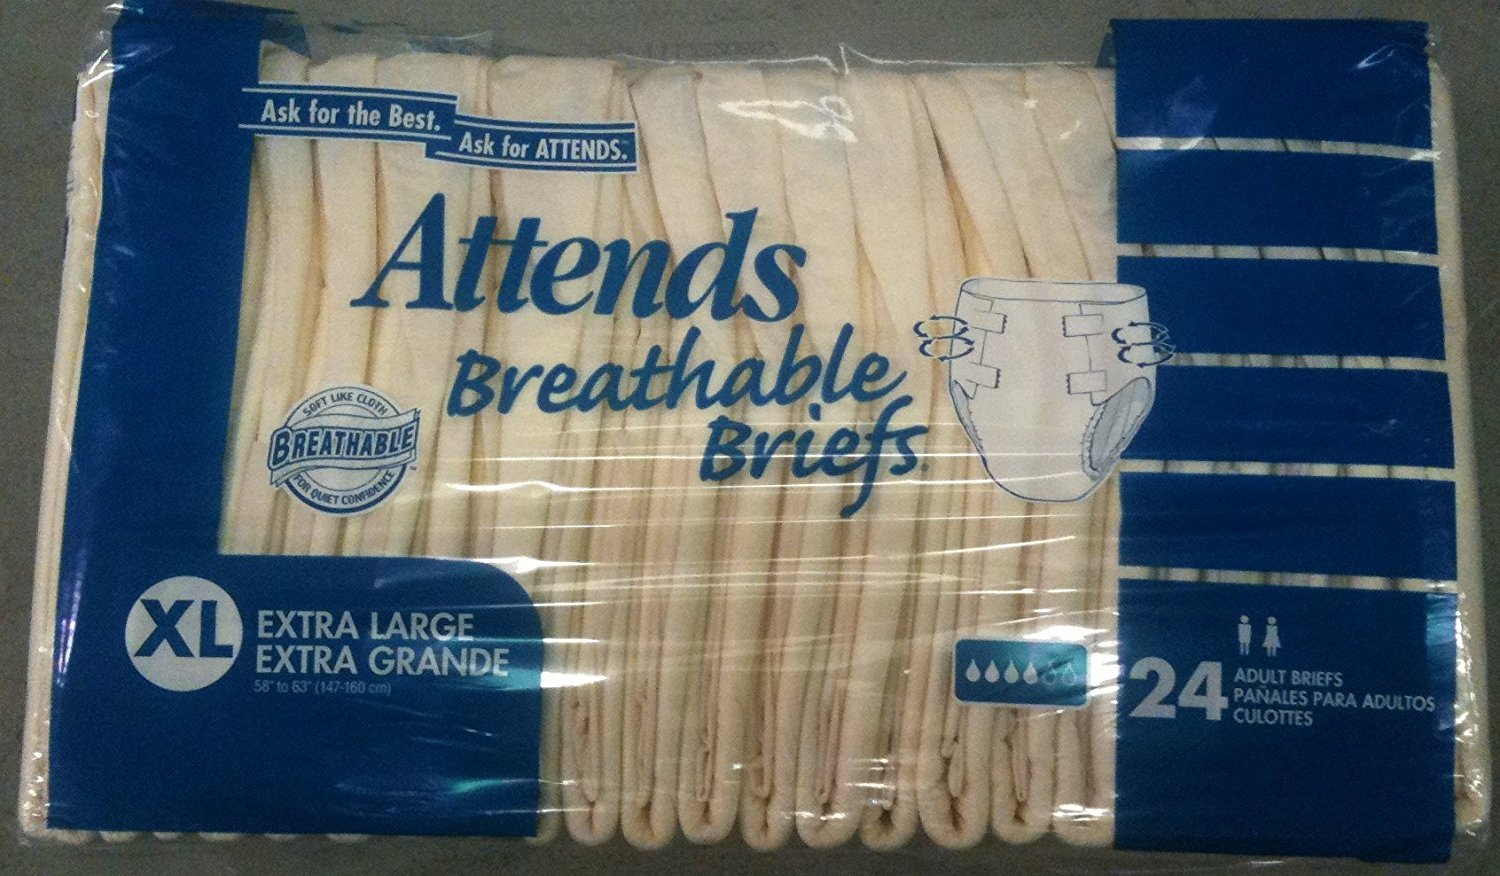 Amazon.com: Attends Breathable Briefs X-Large 58